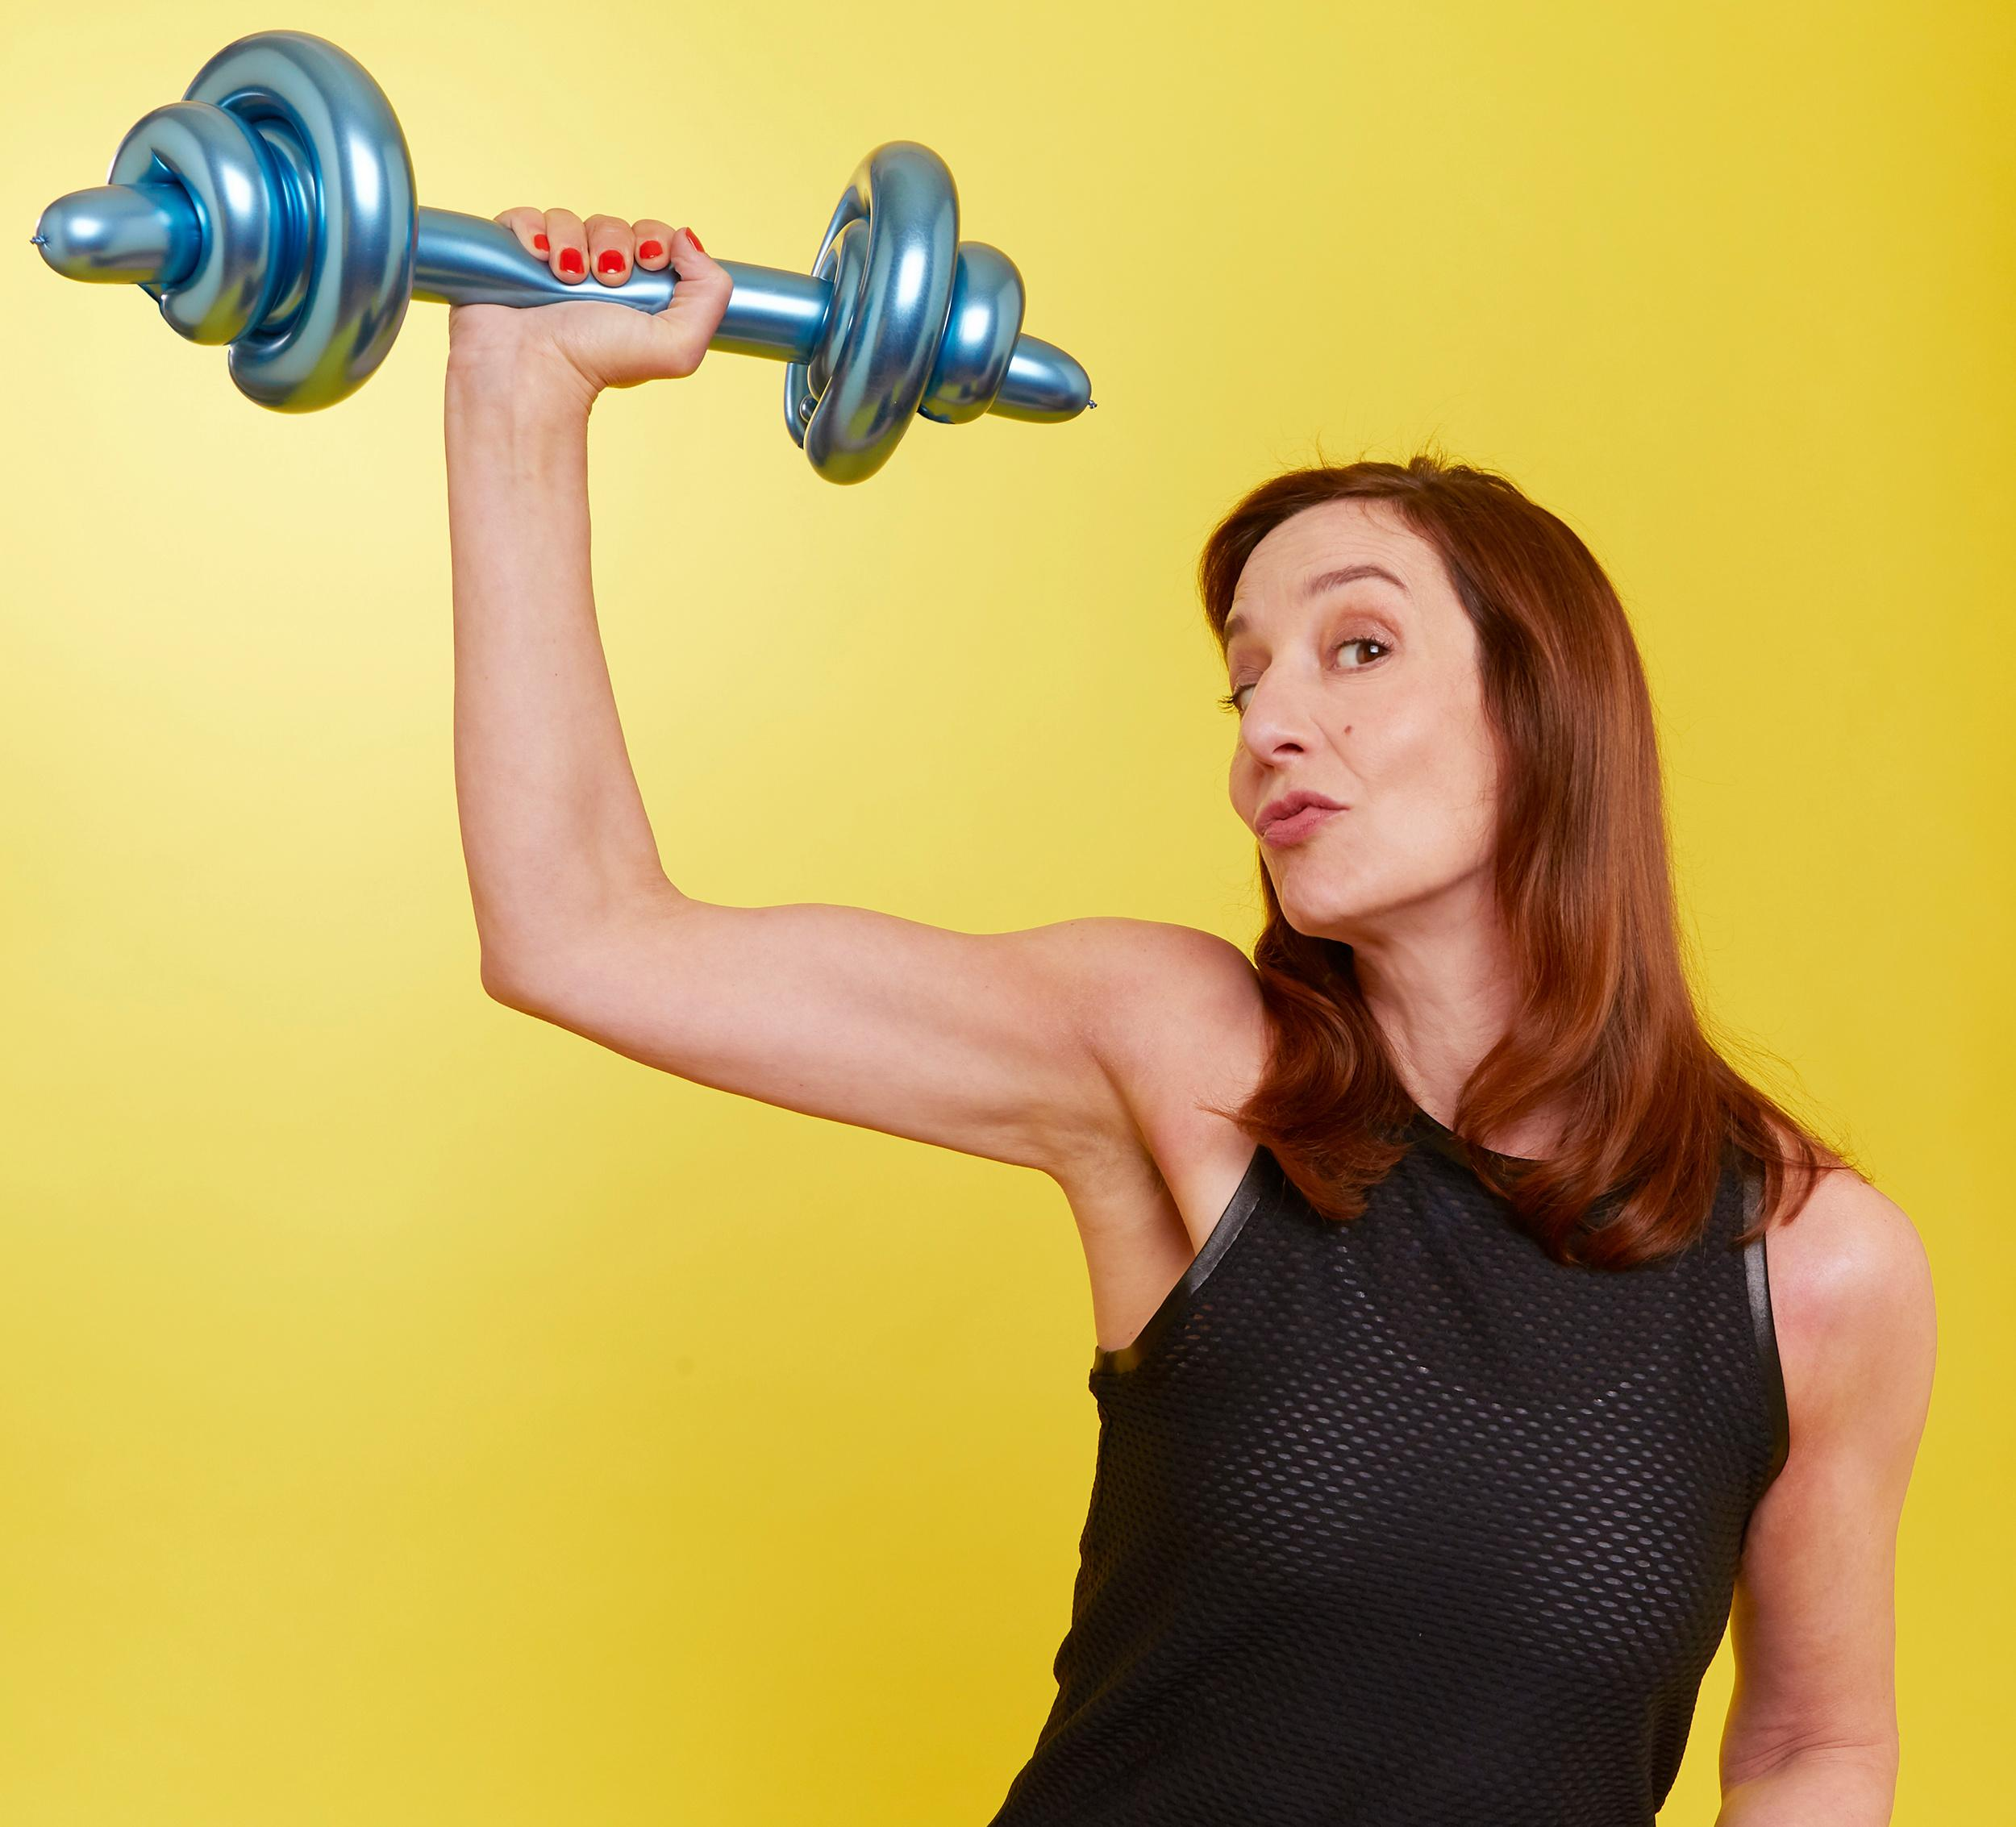 Fit in my 40s: can I become a strongwoman?